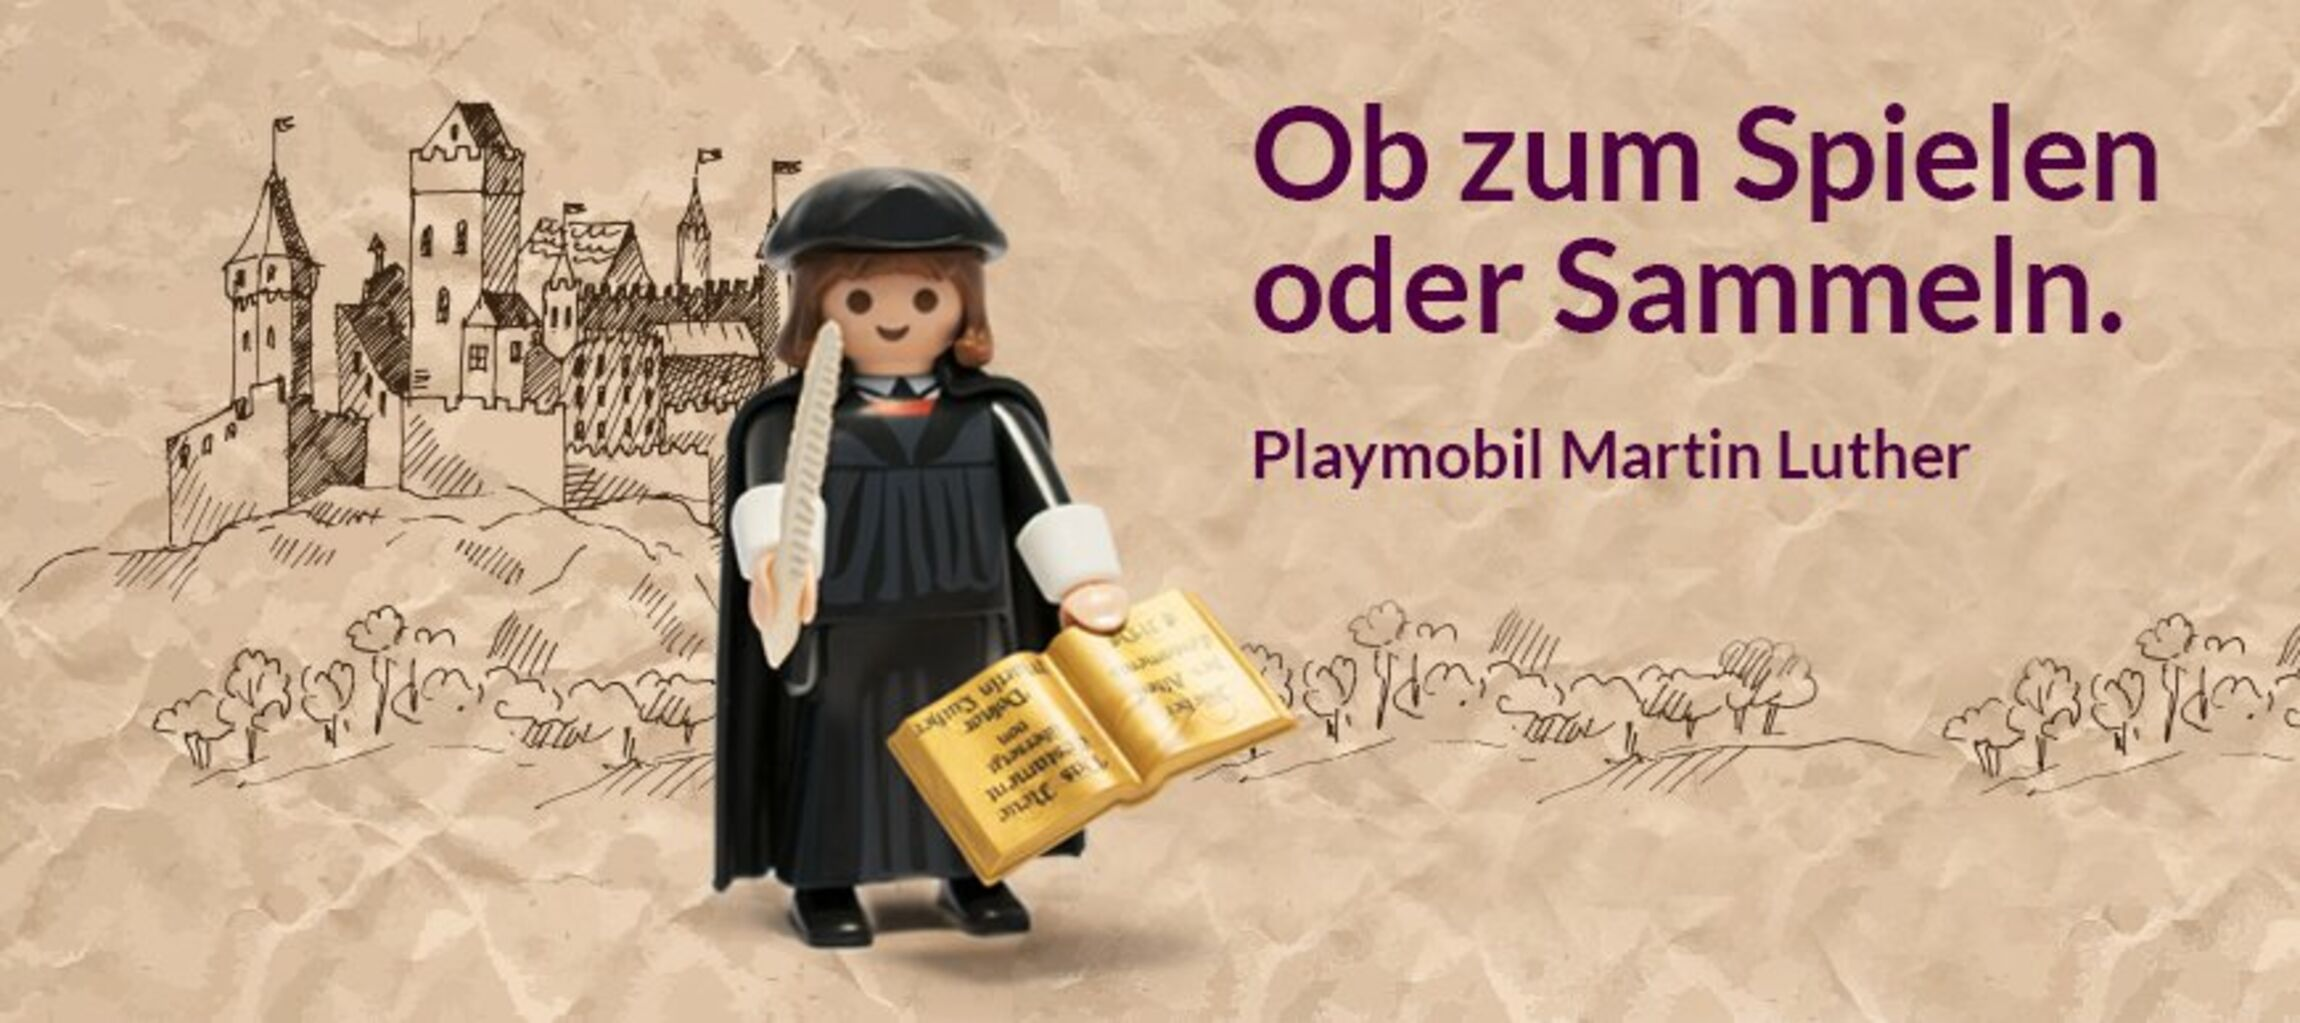 Playmobil-Martin-Luther